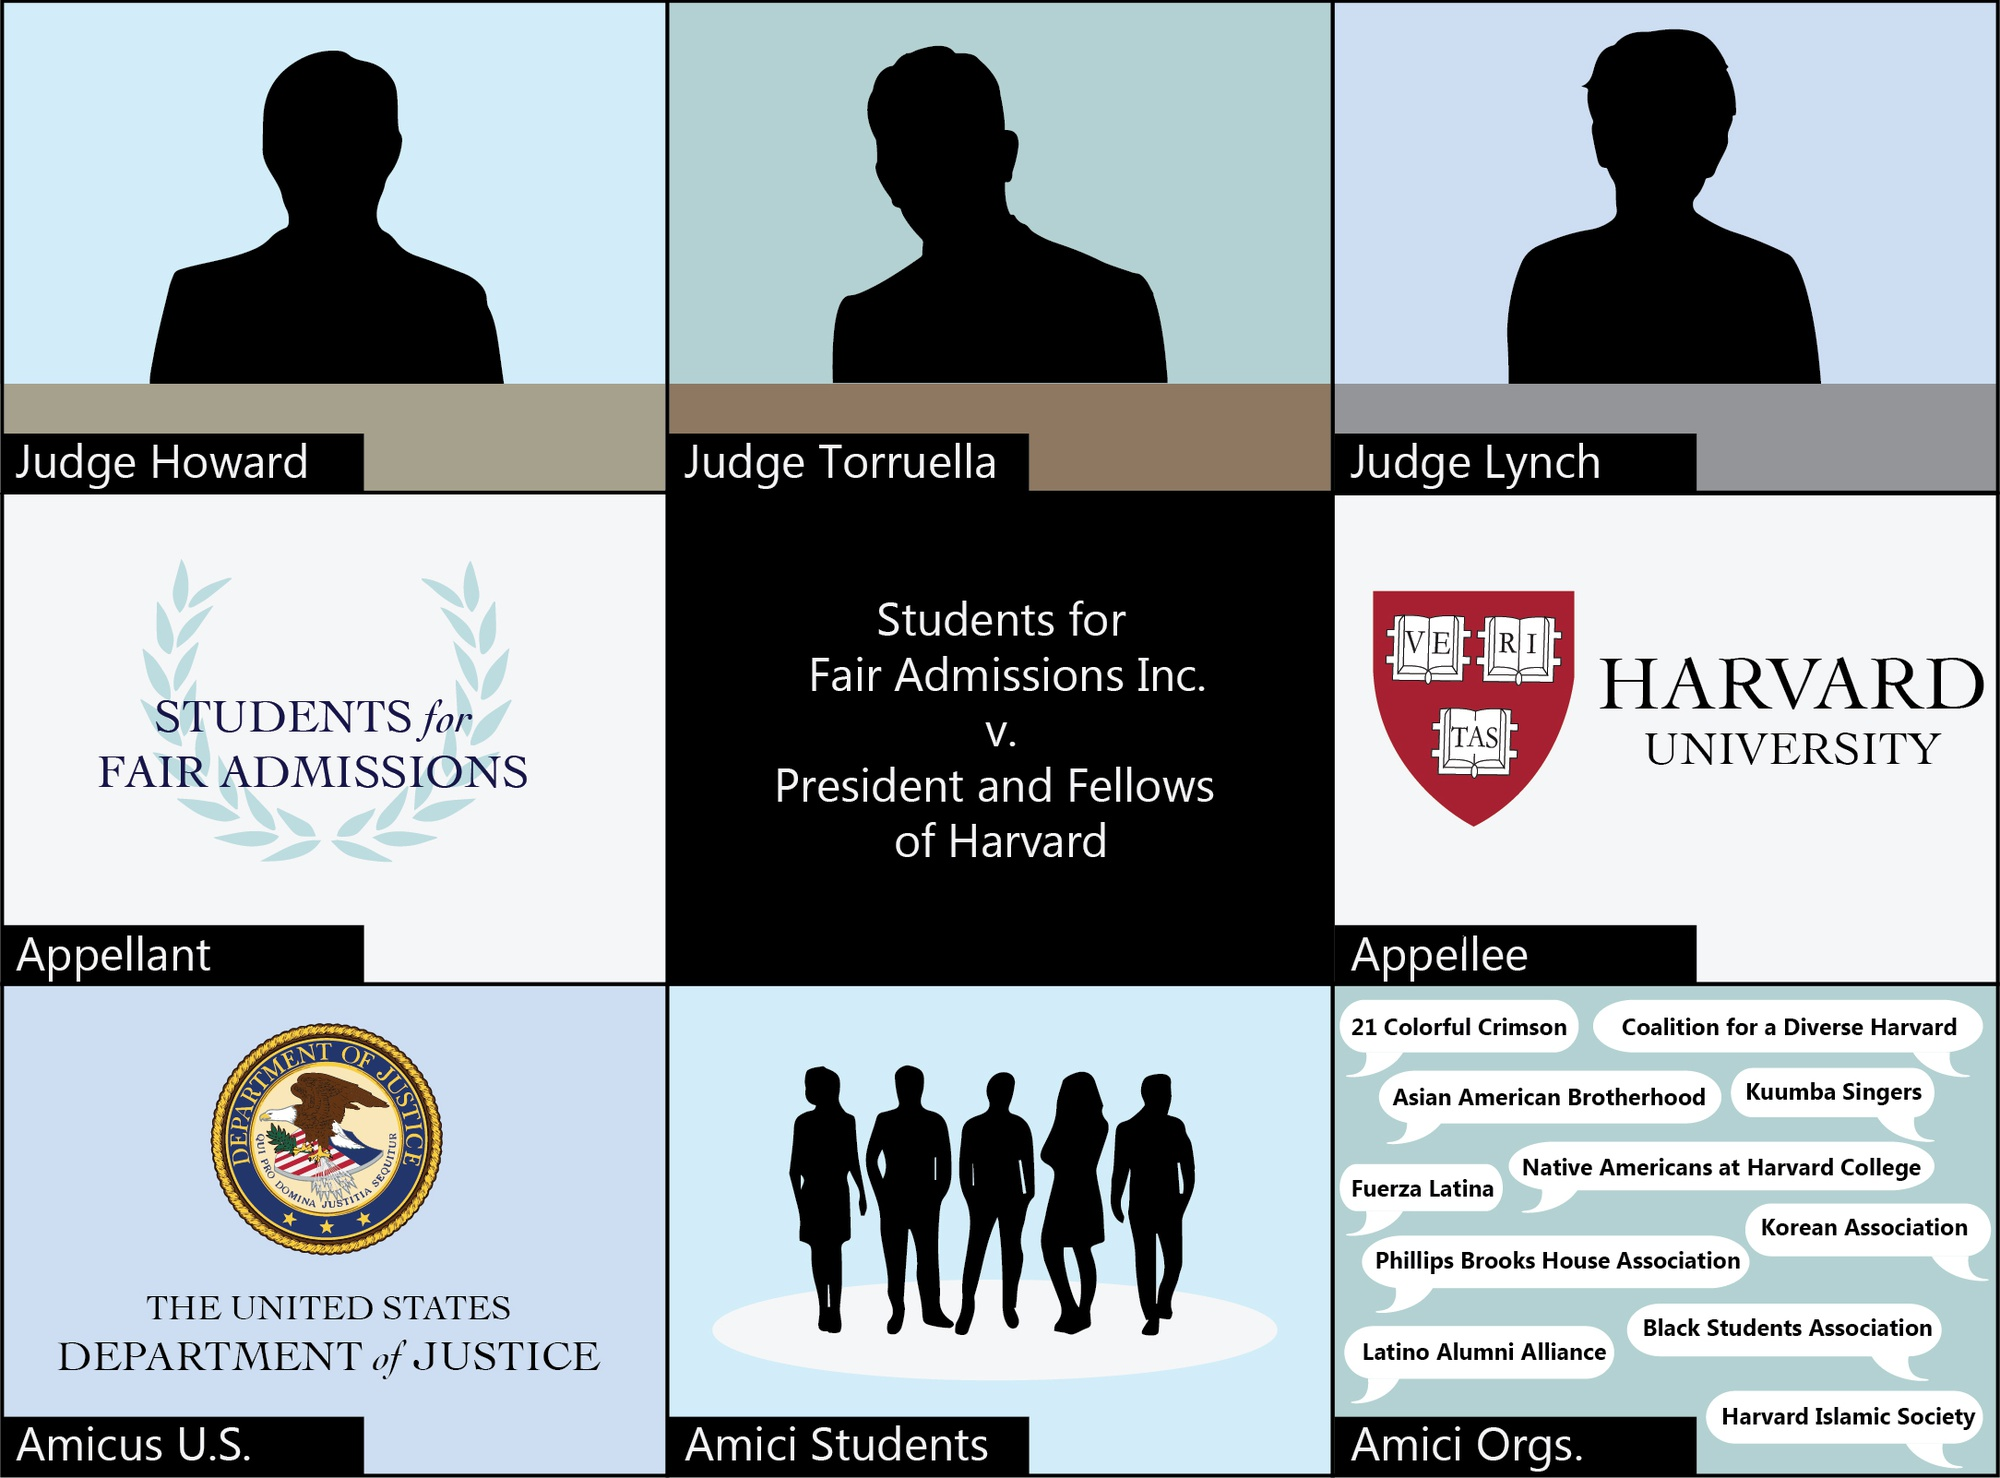 www.thecrimson.com: Harvard, SFFA Spar Over Future of Affirmative Action in Appeal Hearing